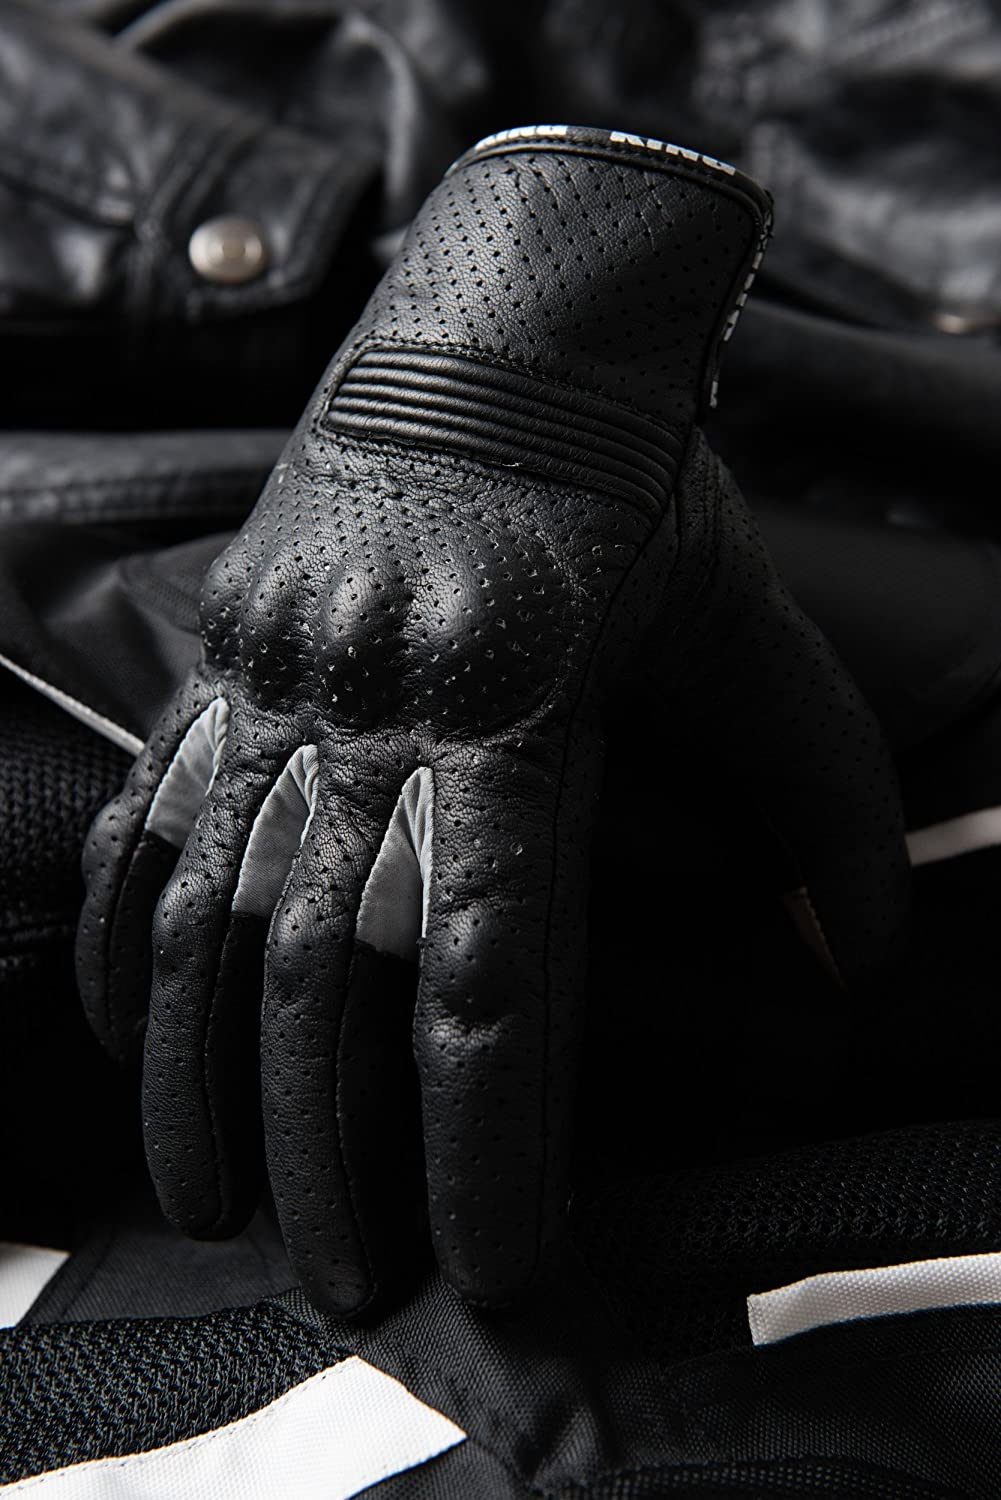 Breathable Moisture Wick Air Flow Technology Between Fingers Motorcycle Biker Gloves Black Premium Leather SWIFT Black-Sm Padded All Weather Feature for Men and Women Touchscreen